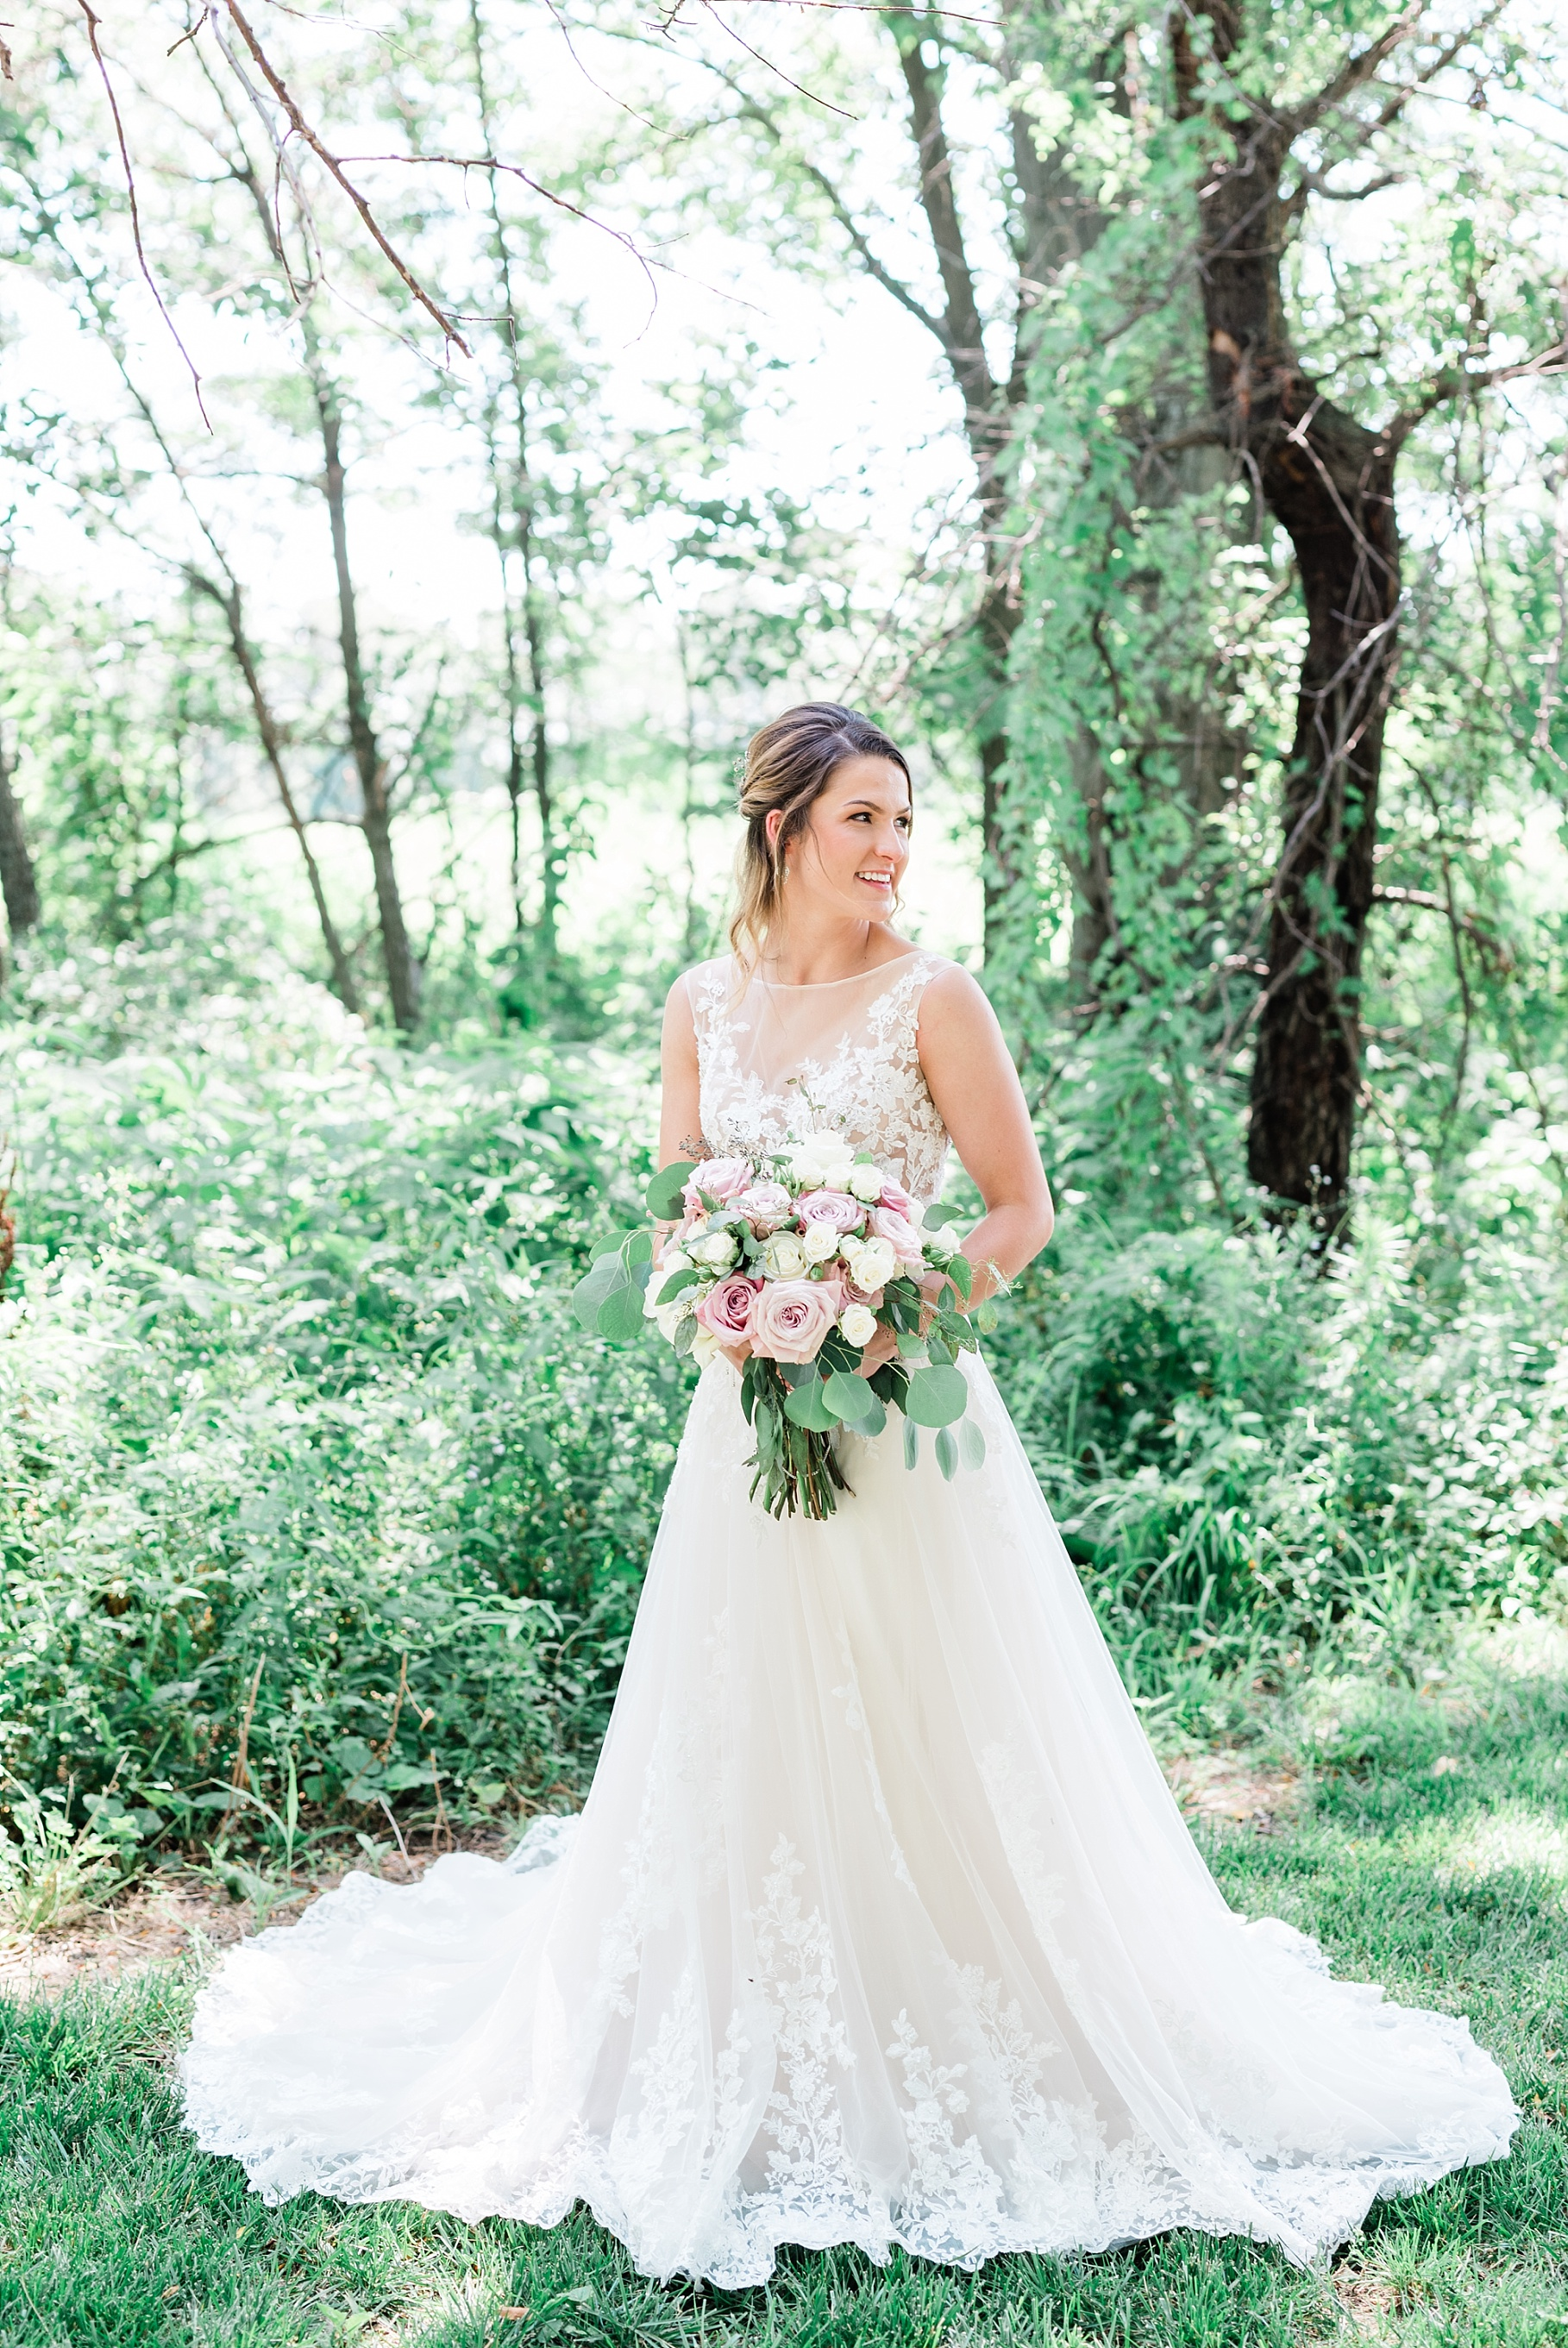 Classic Quartz, White, and Deep Green Wedding at Emerson Fields by Kelsi Kliethermes Photography Best Columbia Missouri and Maui Hawaii Wedding Photographer_0059.jpg